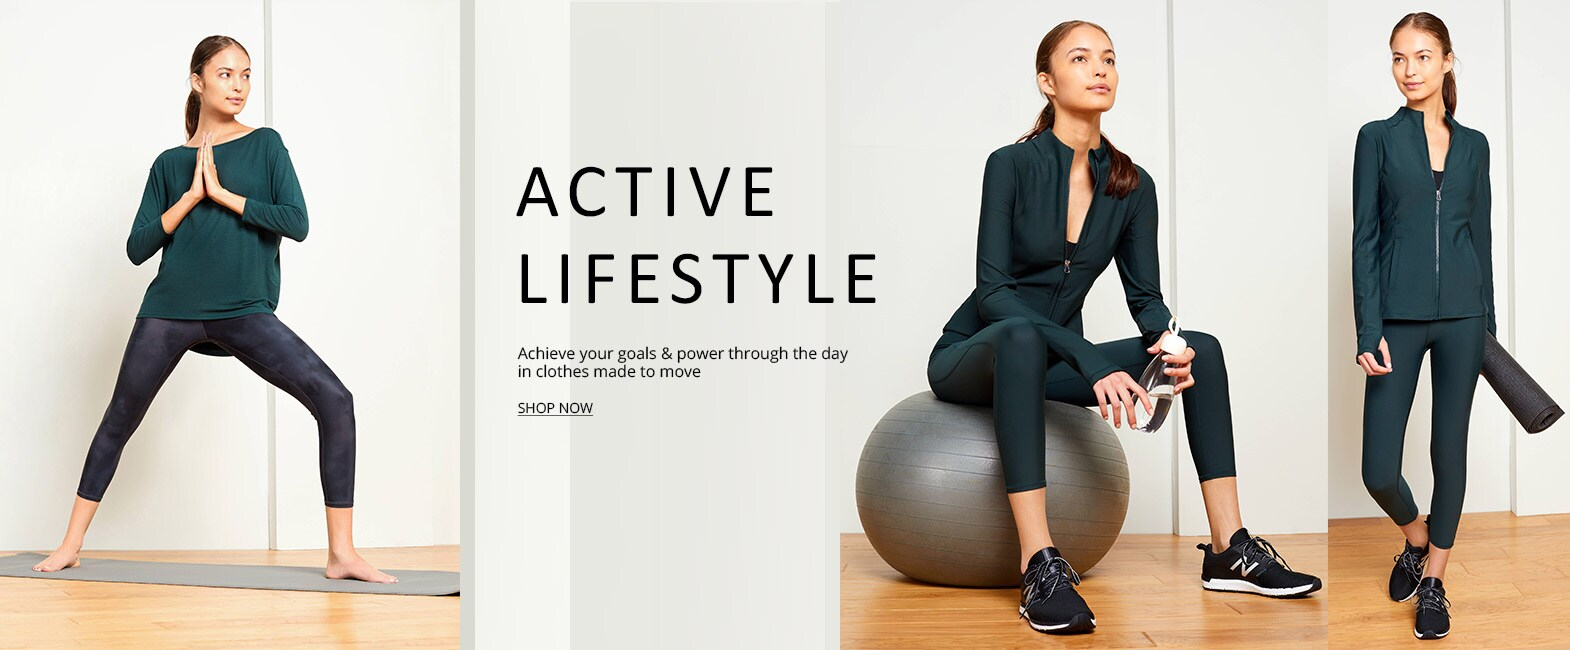 Shop all Activewear - Achieve your goals and power throught the day in clothes made to move - Shop Now